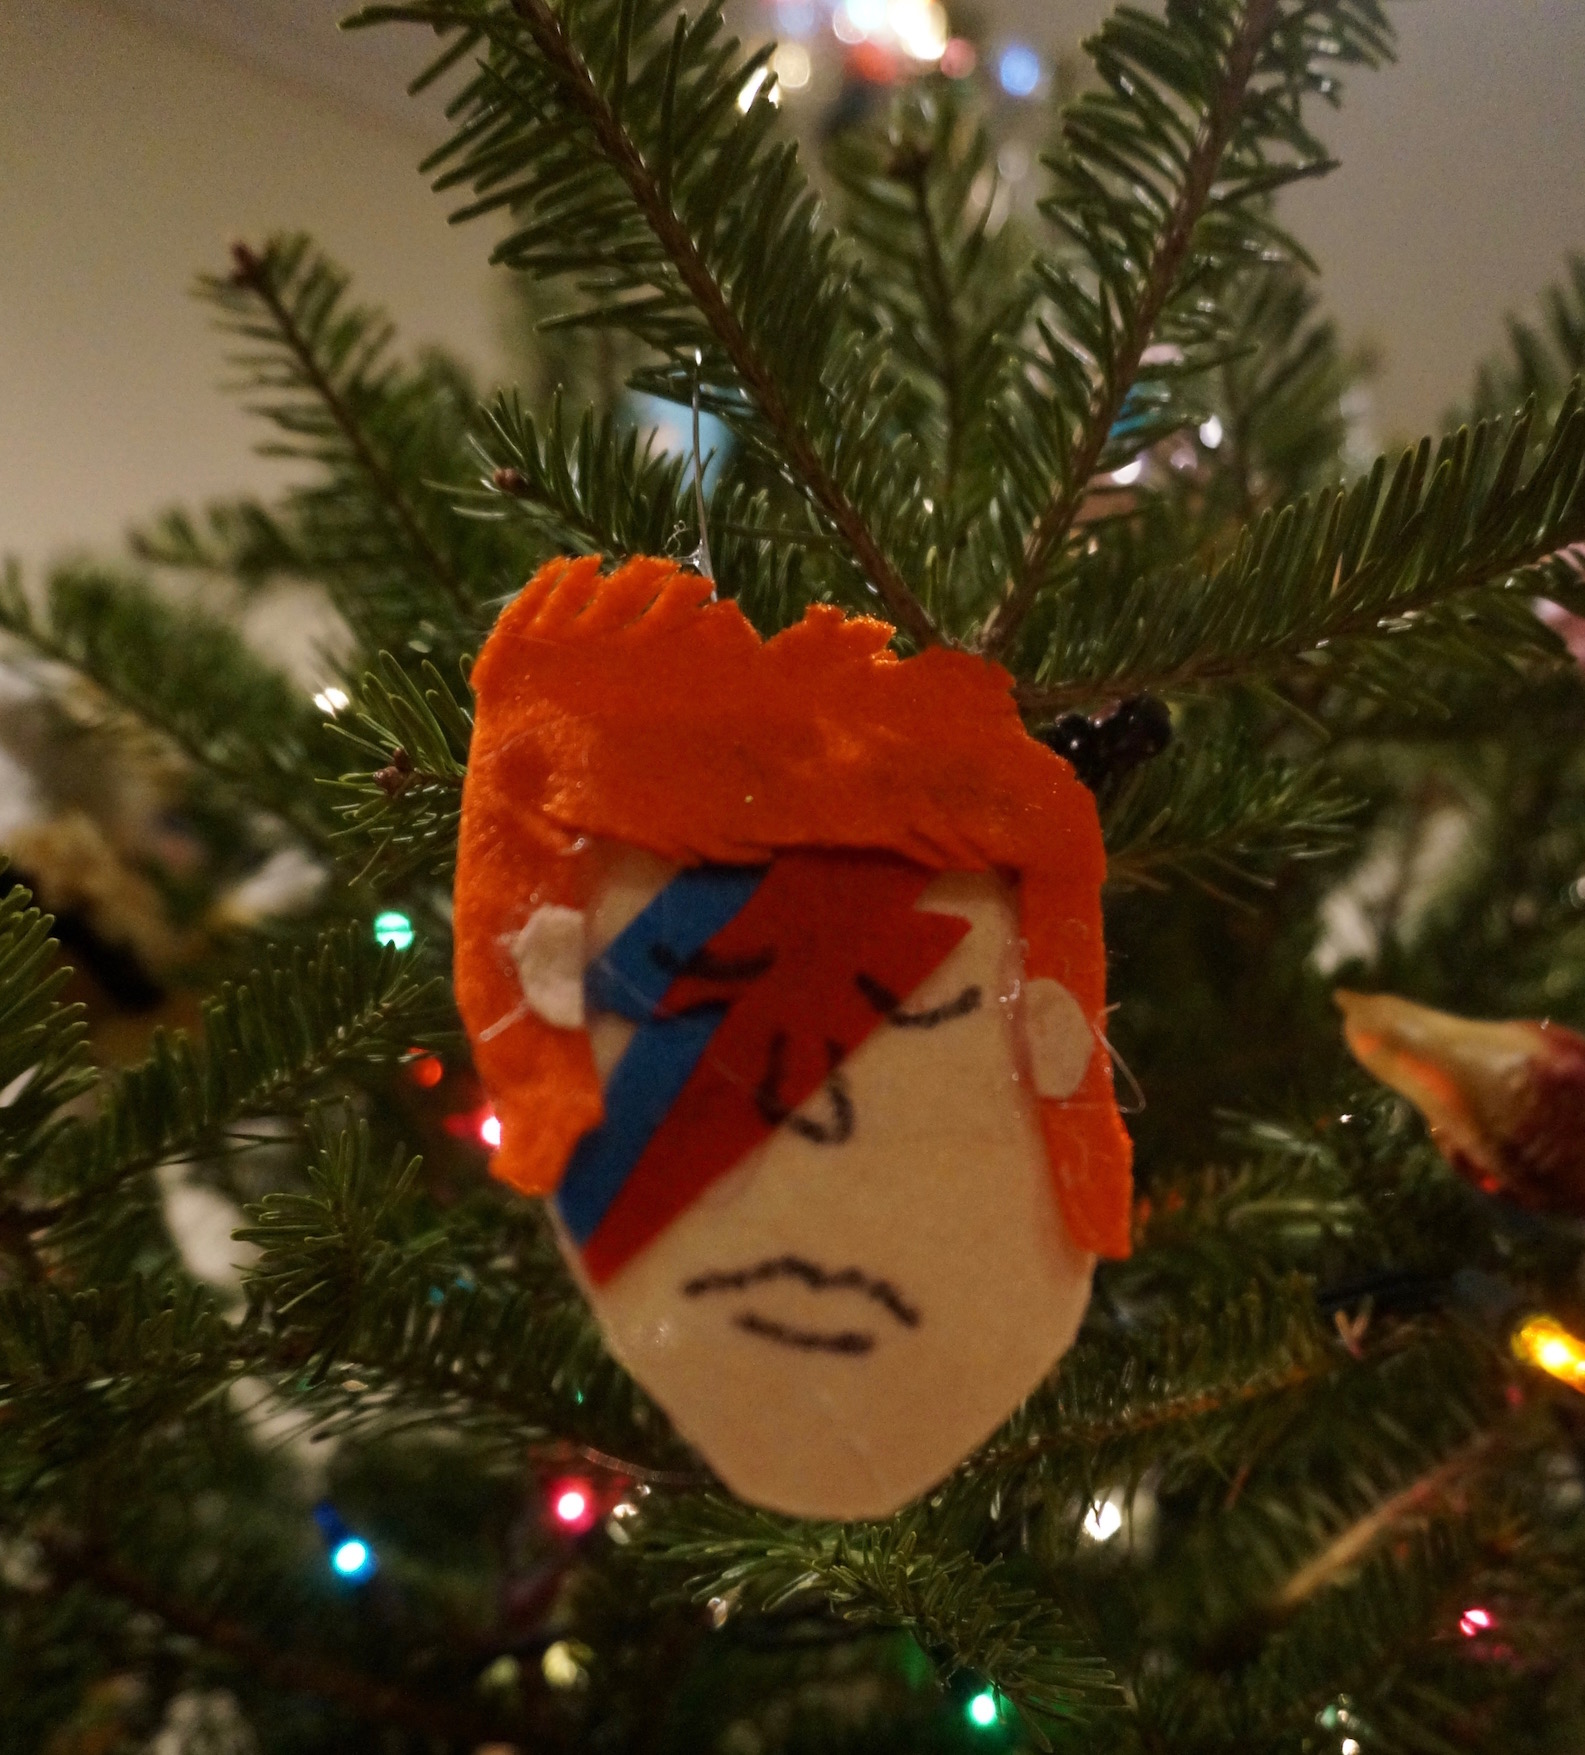 christmas ornament david bowie - David Bowie Christmas